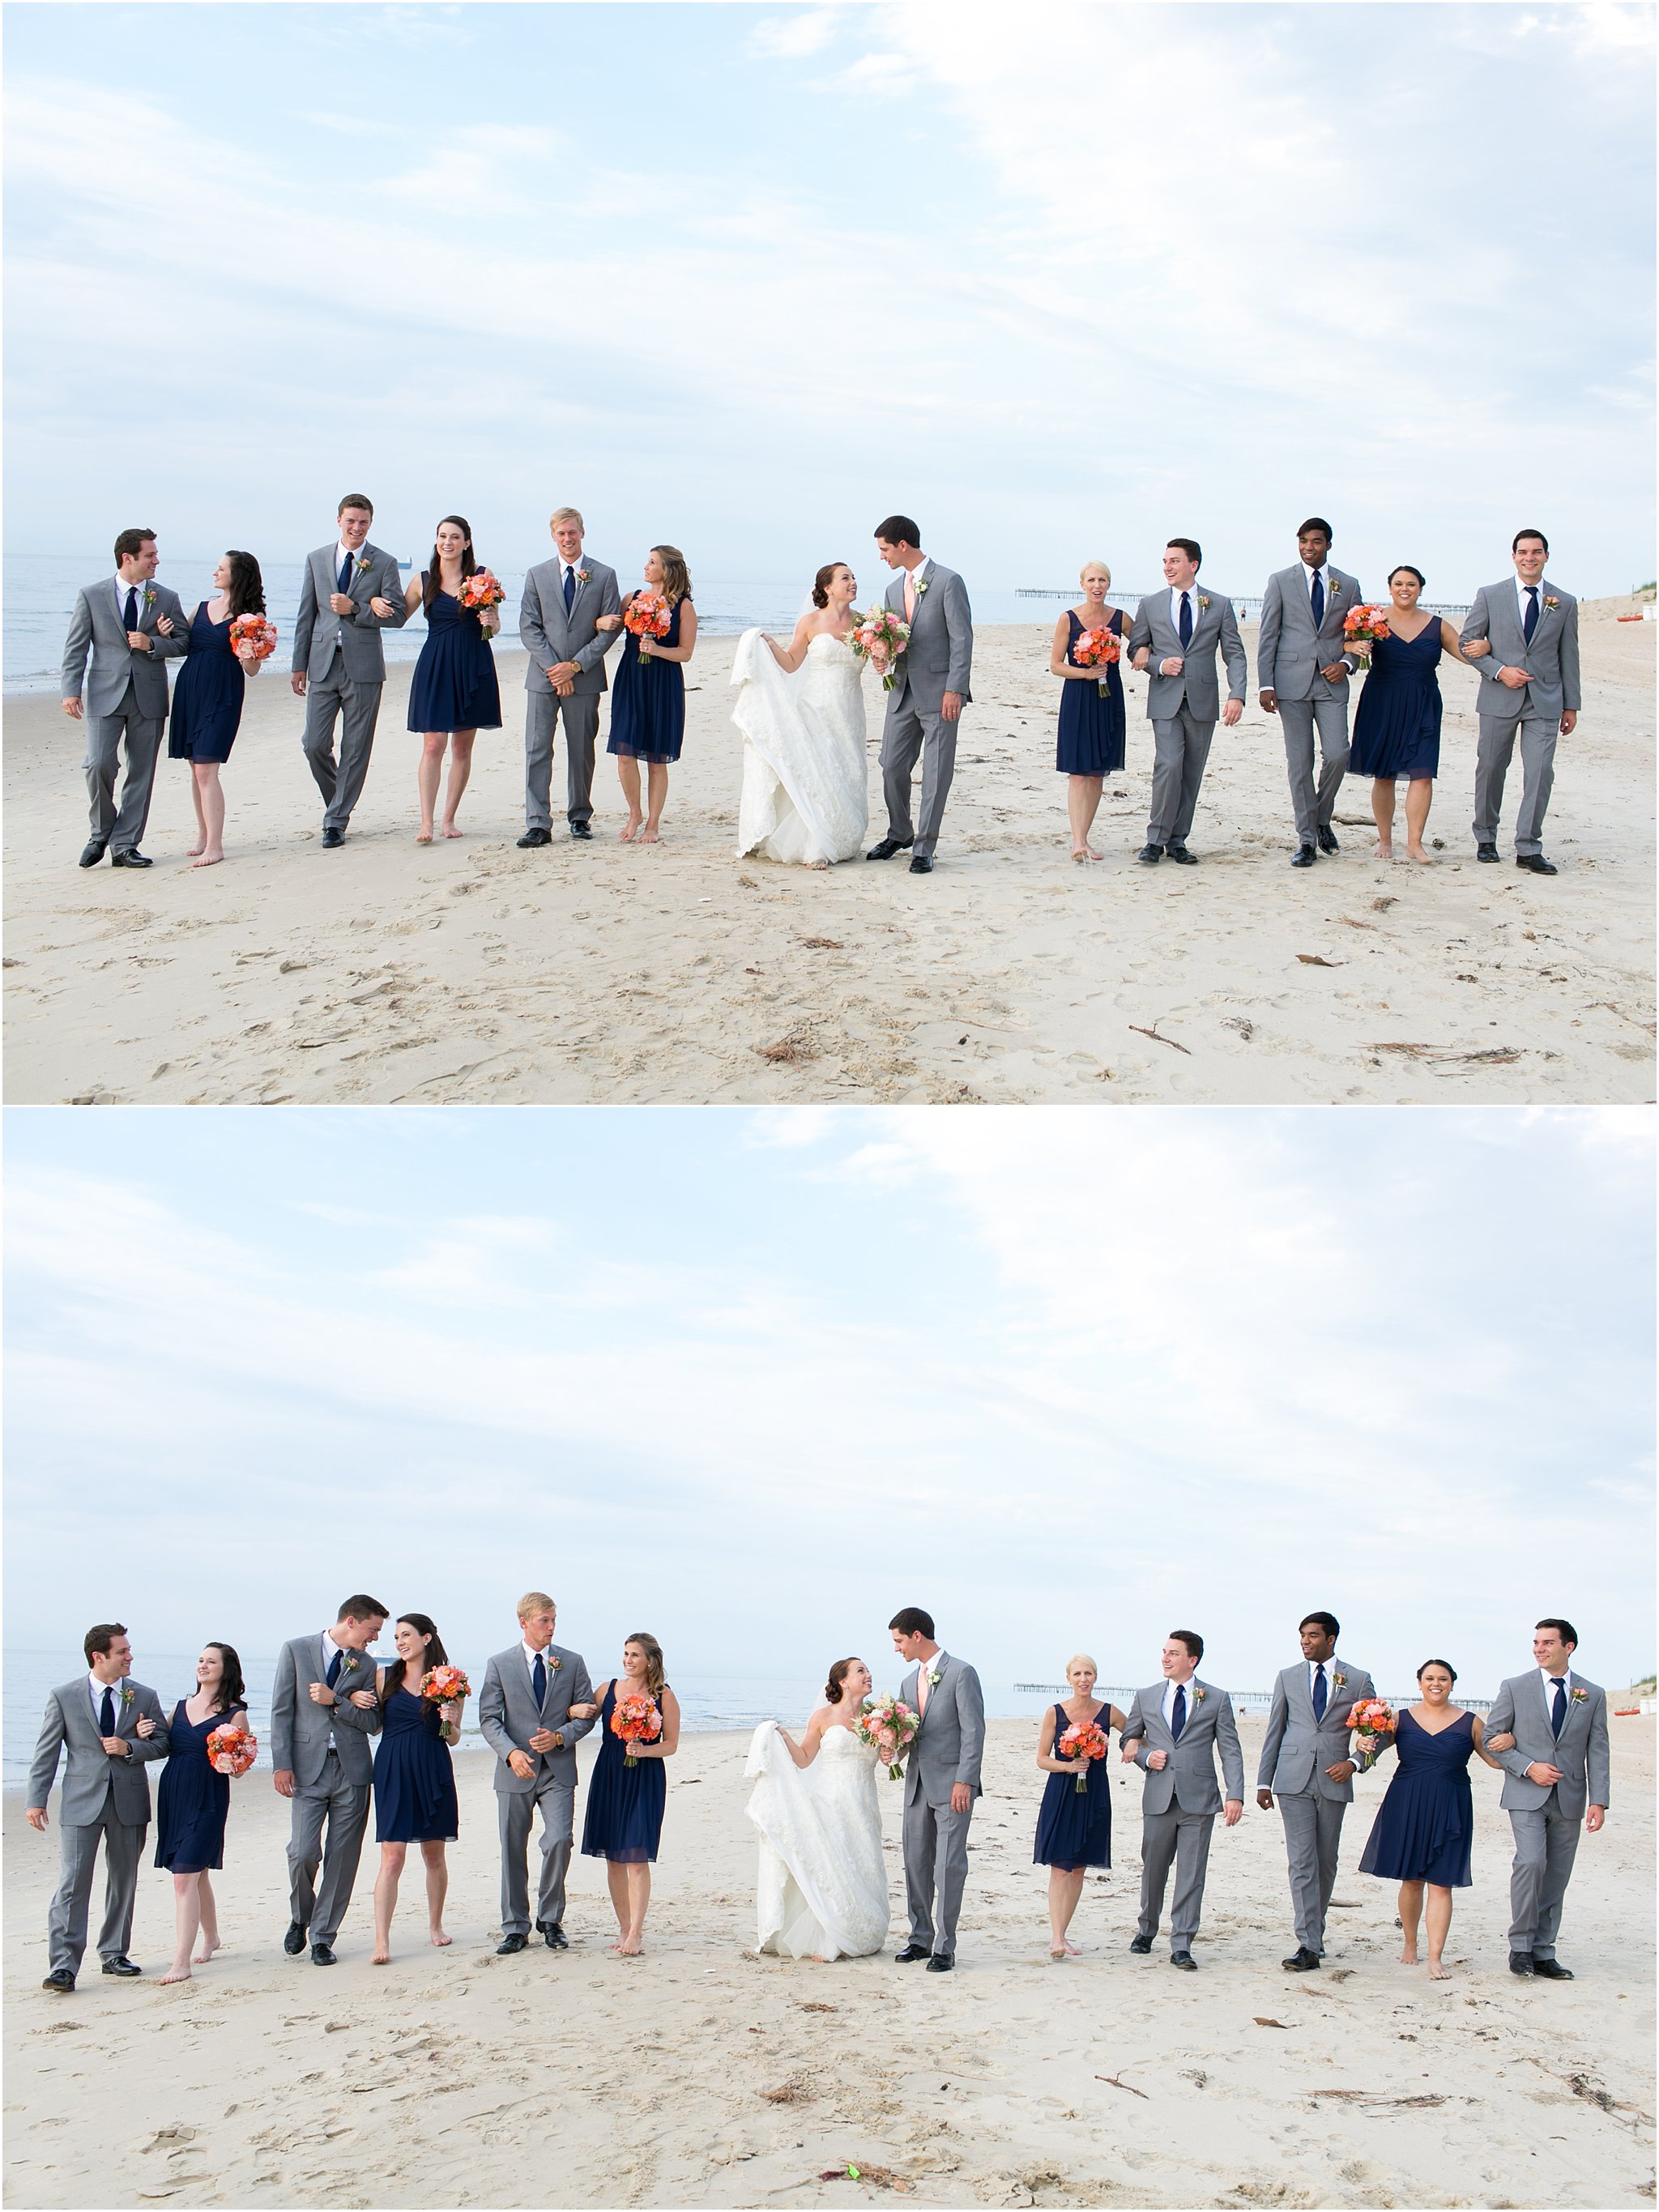 jessica_ryan_photography_wedding_photography_virginiabeach_virginia_candid_authentic_wedding_portraits_marina_shores_yacht_club_chesapeake_bay_1857